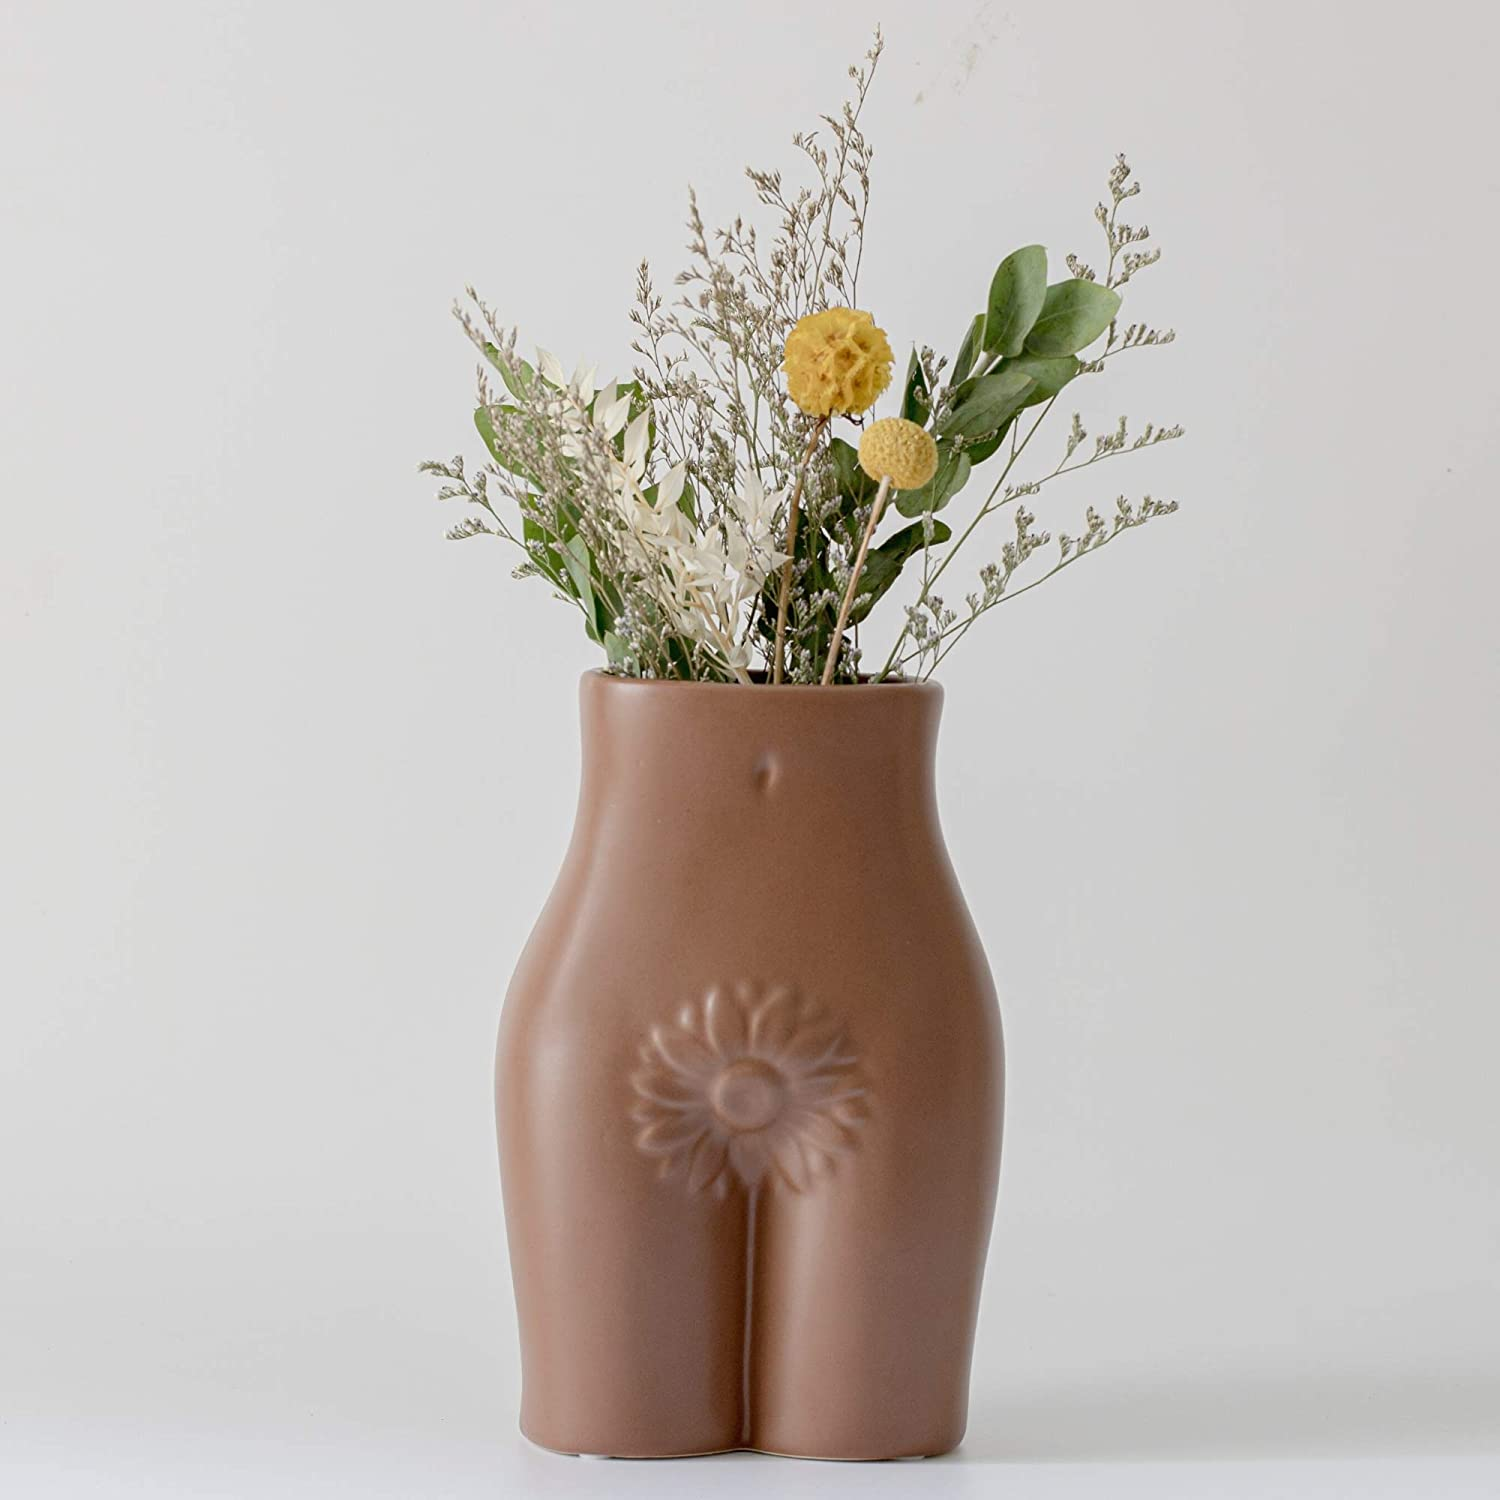 Female Form Body Flower Vase, Tall Ceramic Vases for Modern Boho Home Decor, Lady Butt Vase, Indoor Planter Plant Pot, Feminist Decors Cute Chic Accent Pieces